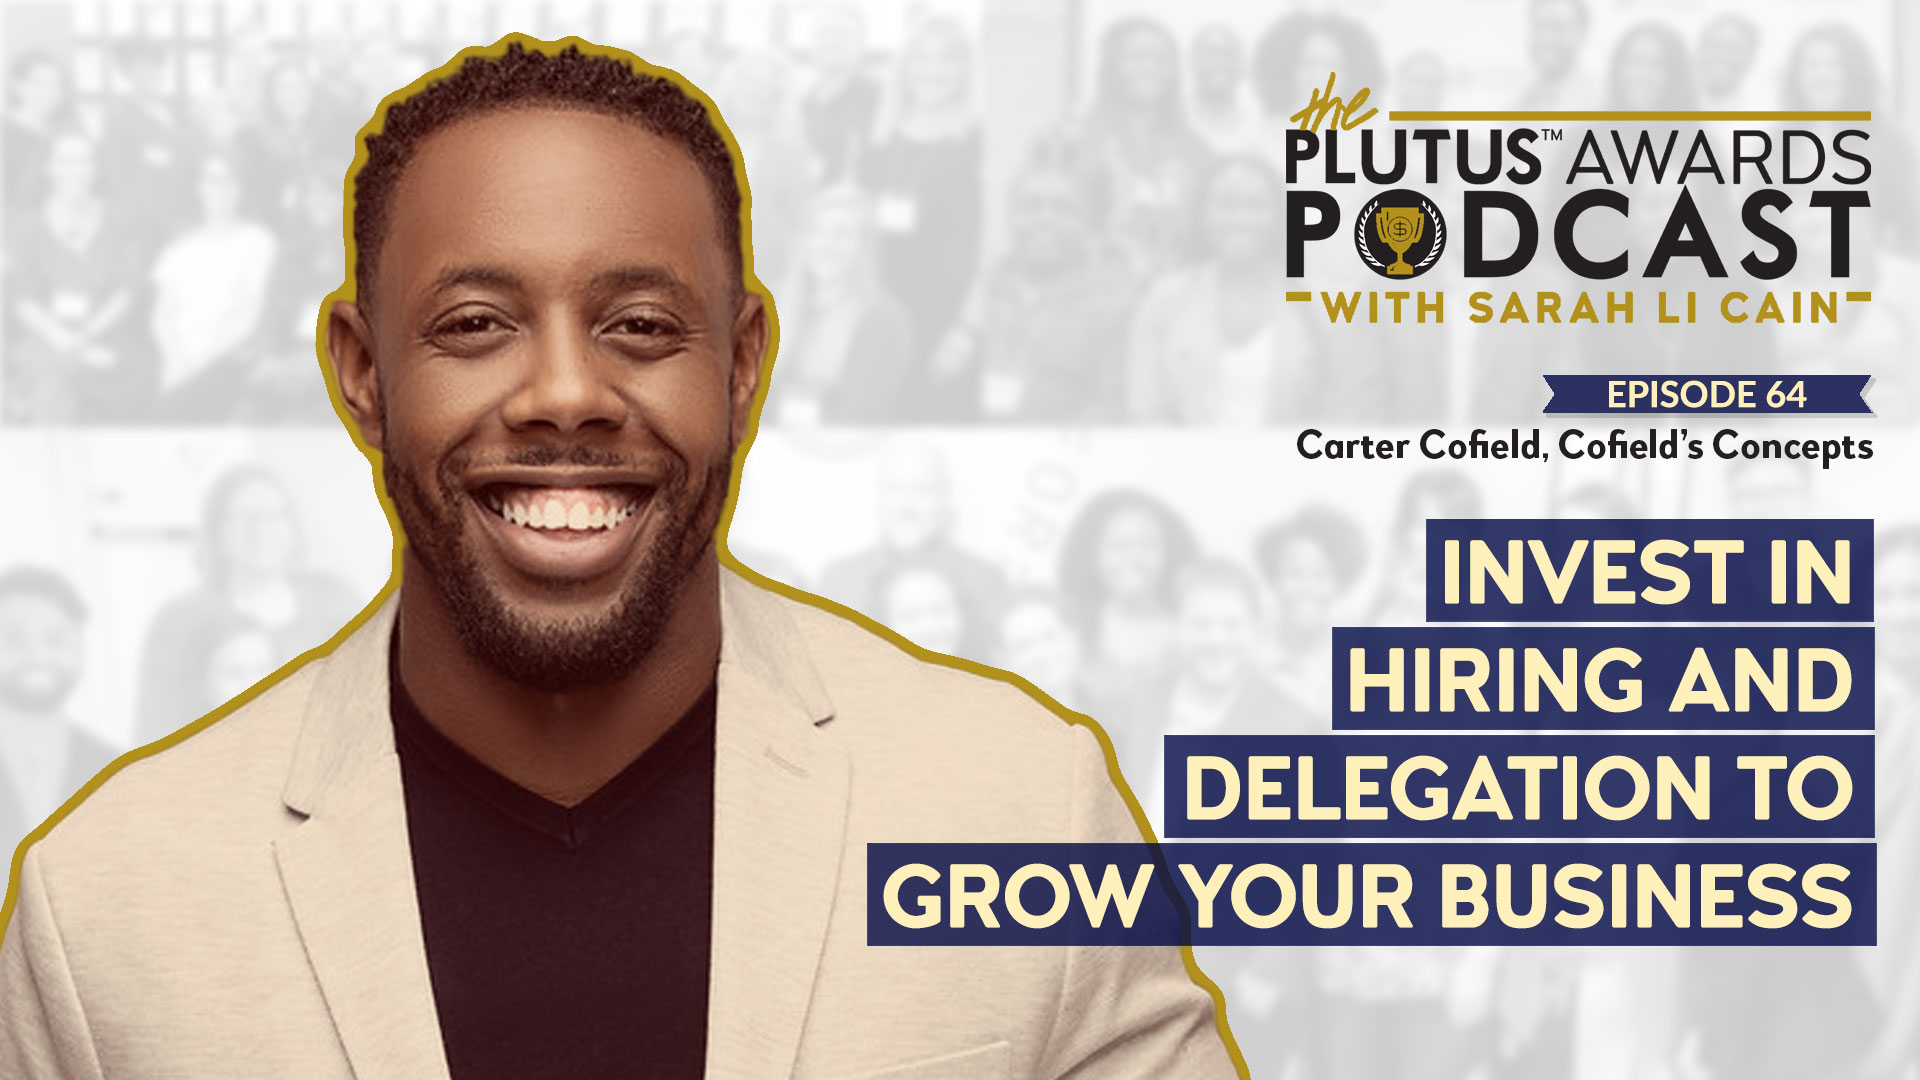 Carter Cofield - Plutus Awards Podcast Featured Image